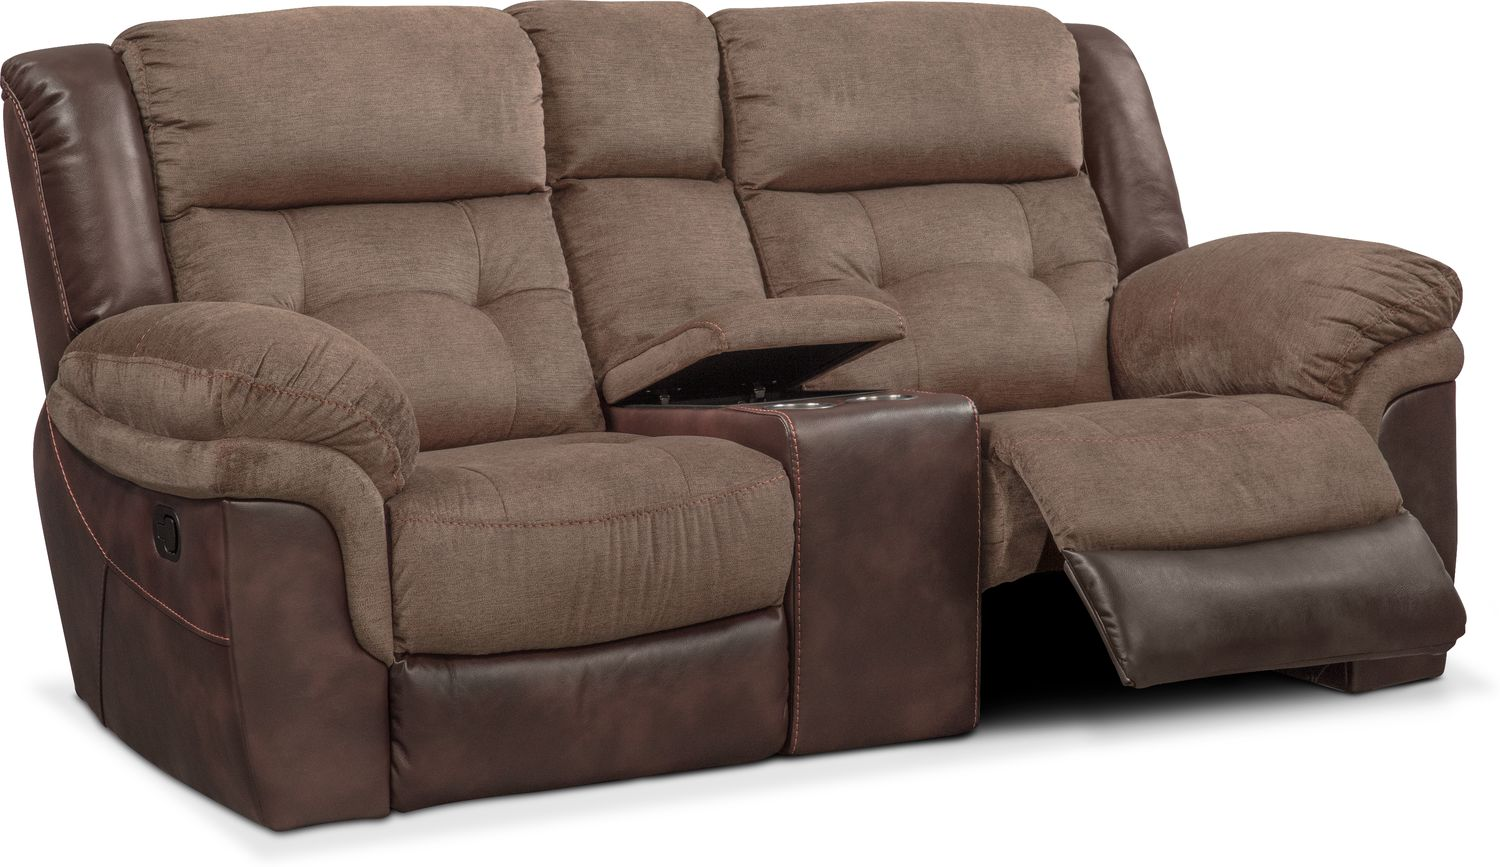 Tacoma Manual Reclining Loveseat With Console Brown